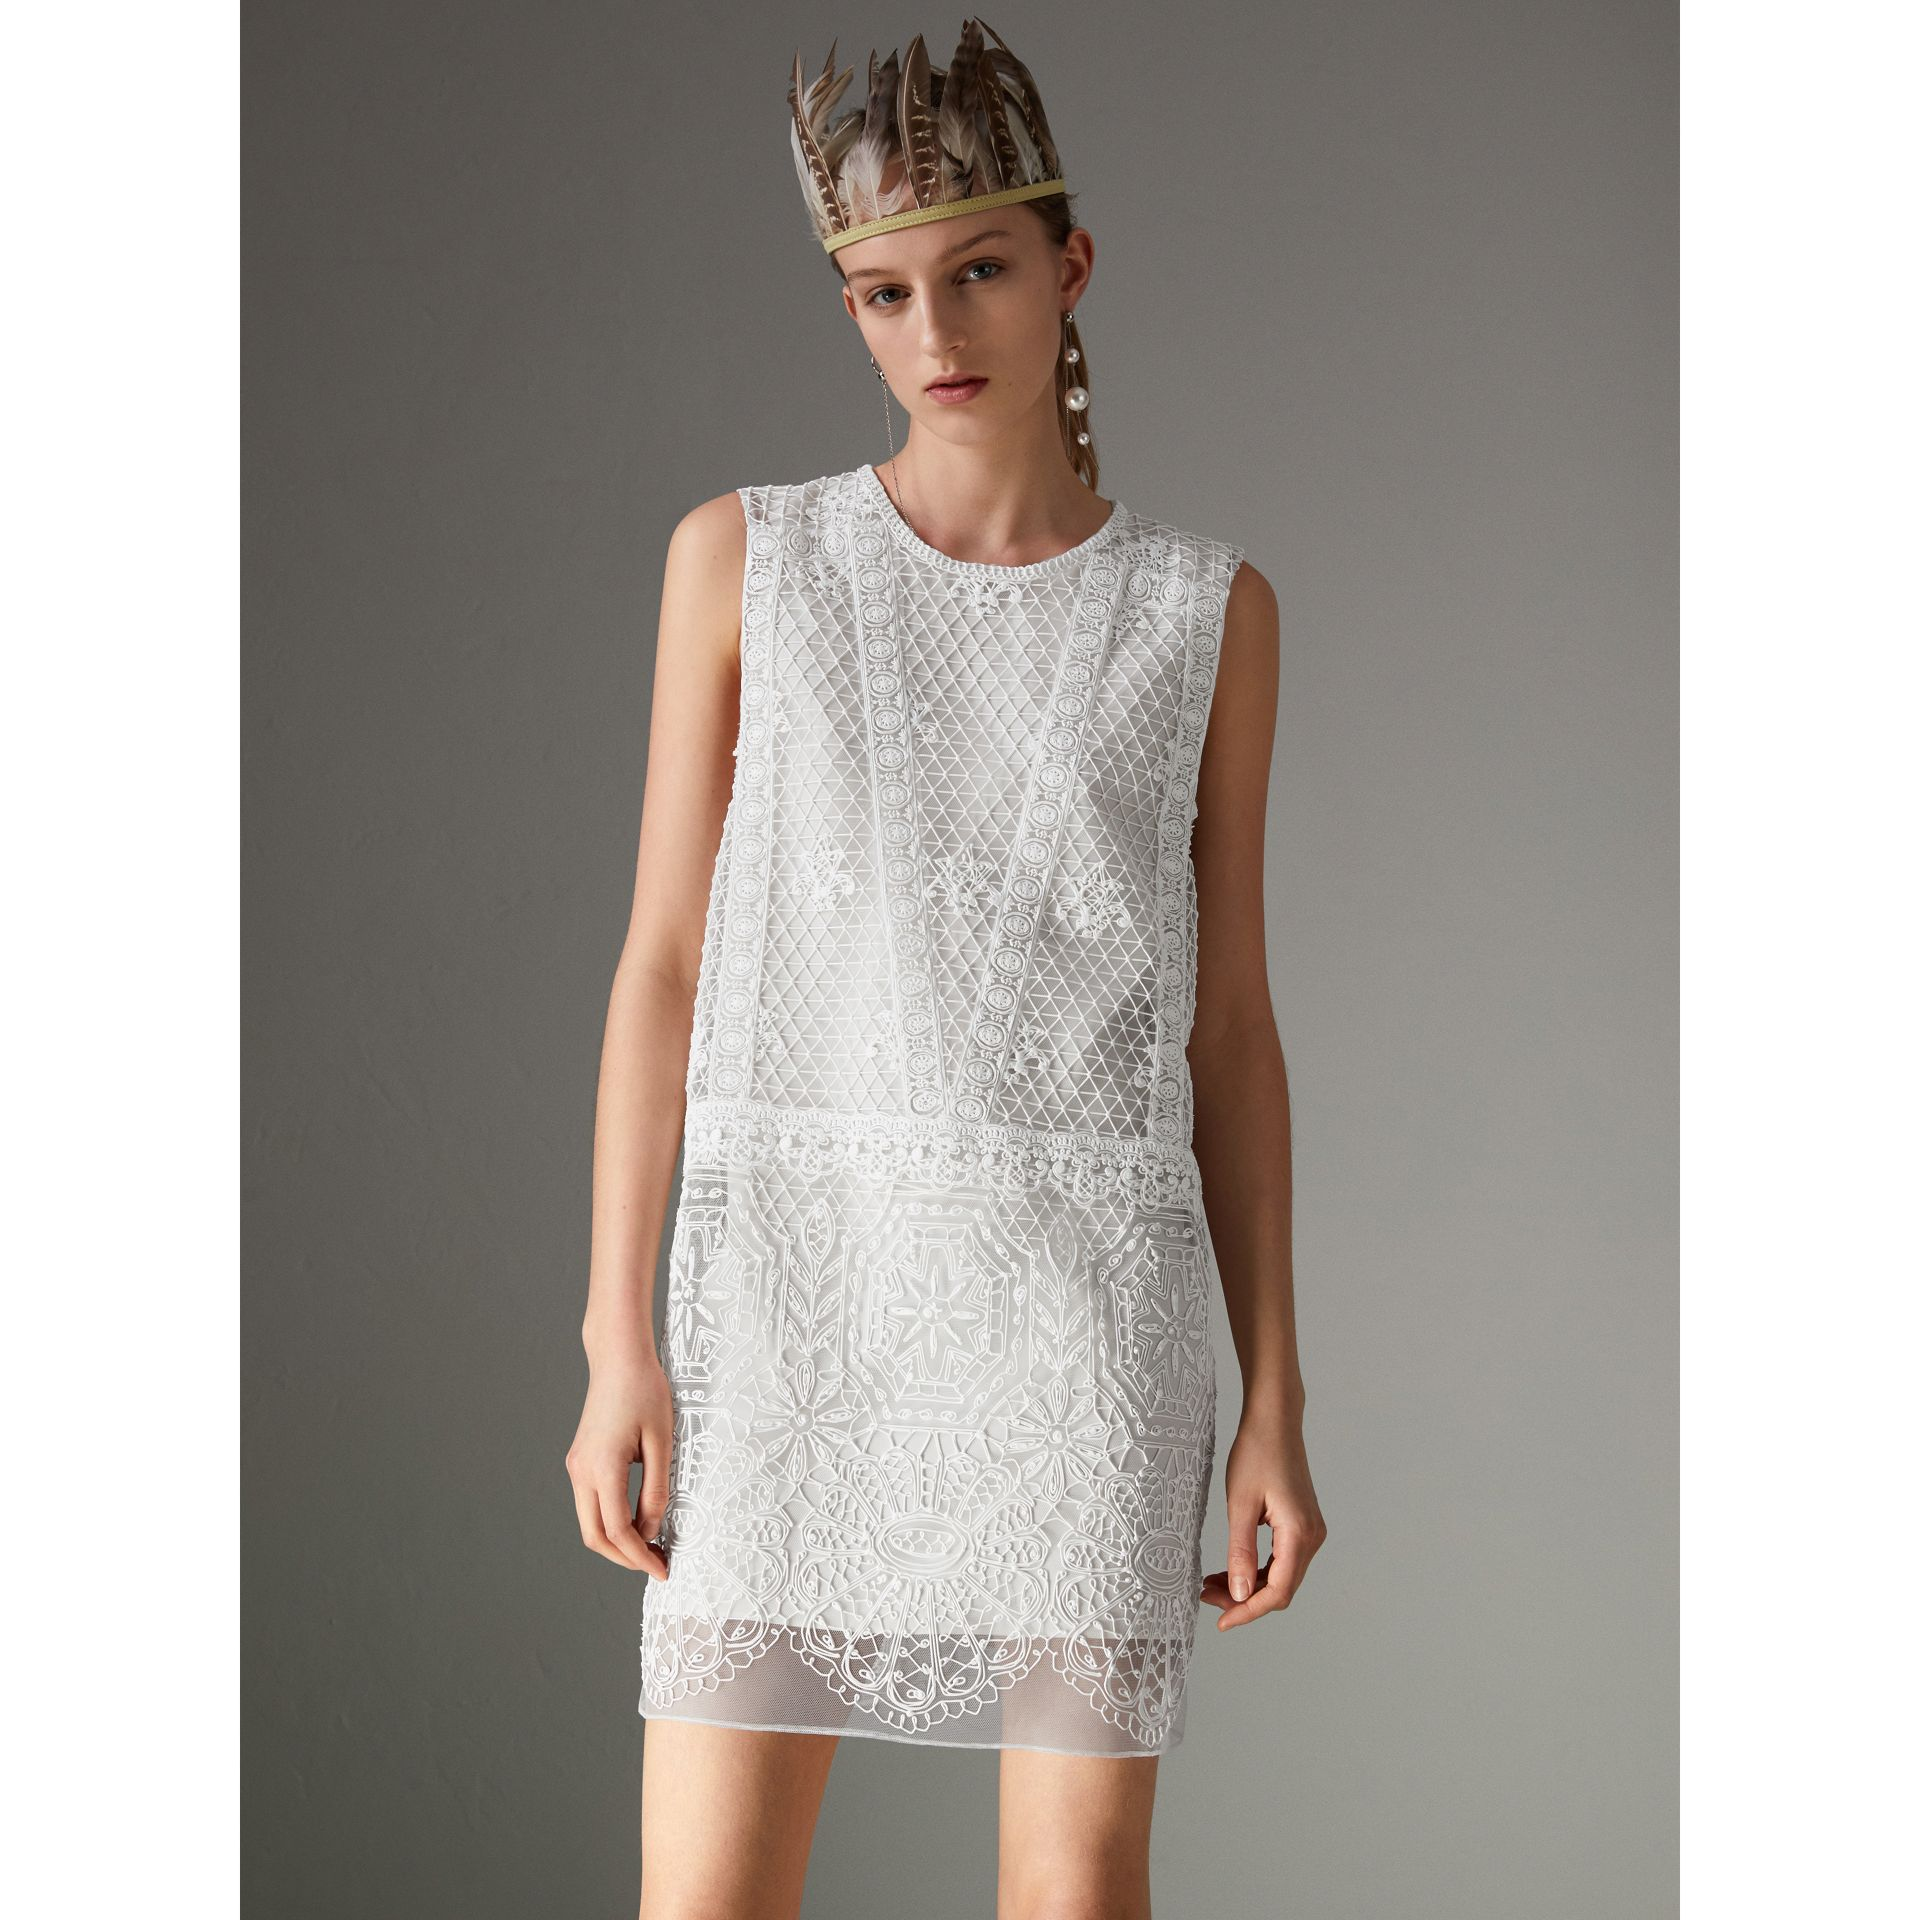 Silicone Lace Mini Dress in White - Women | Burberry Singapore - gallery image 4